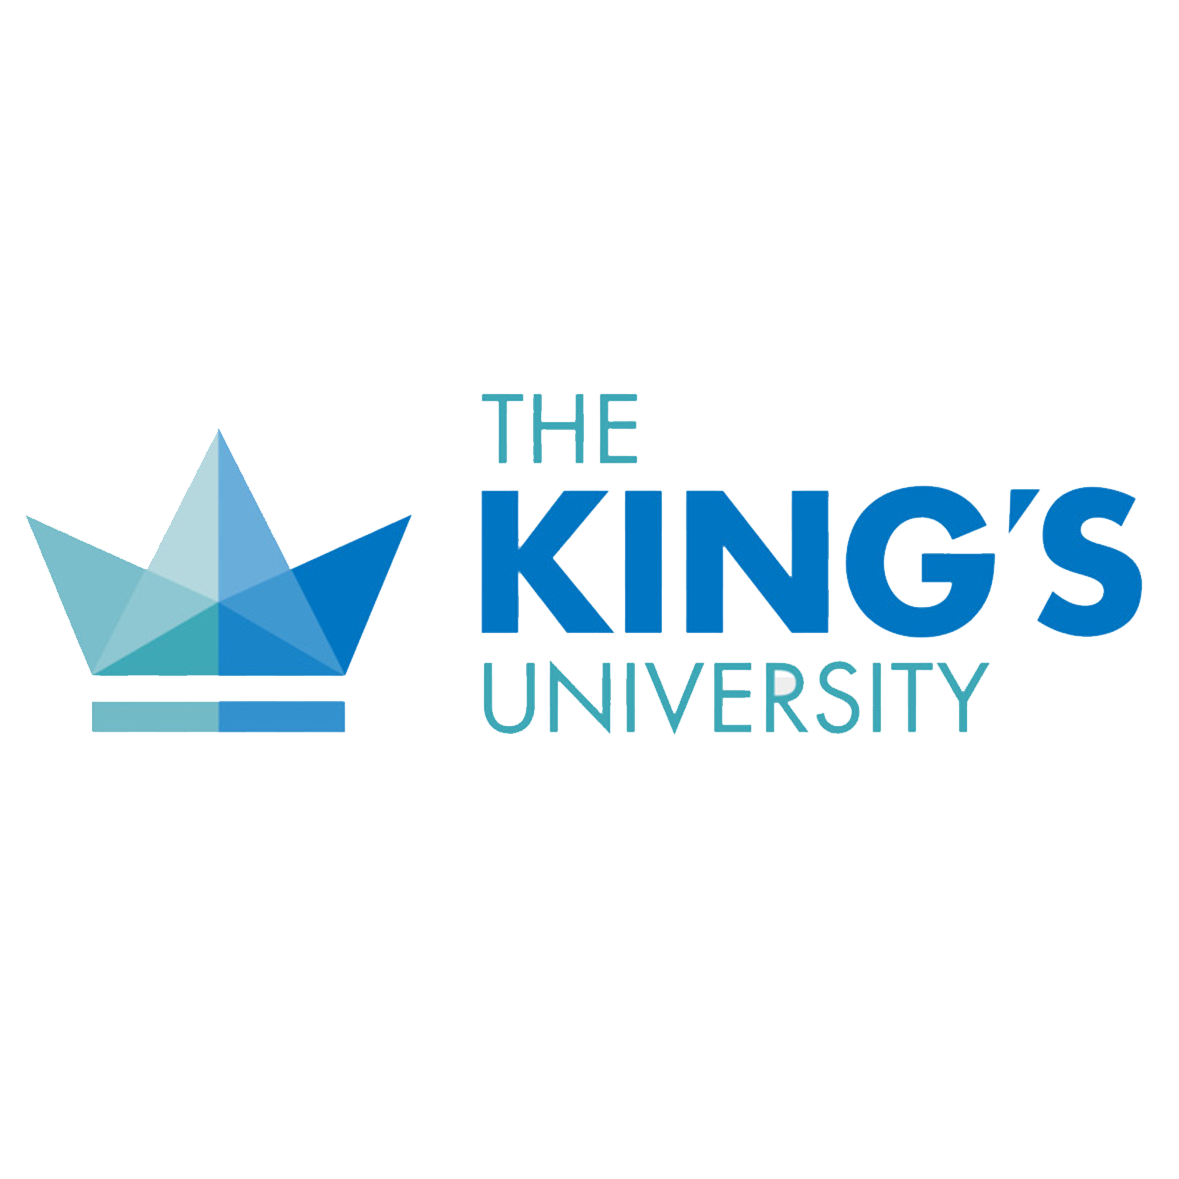 THE KINGS UNIVERSITY